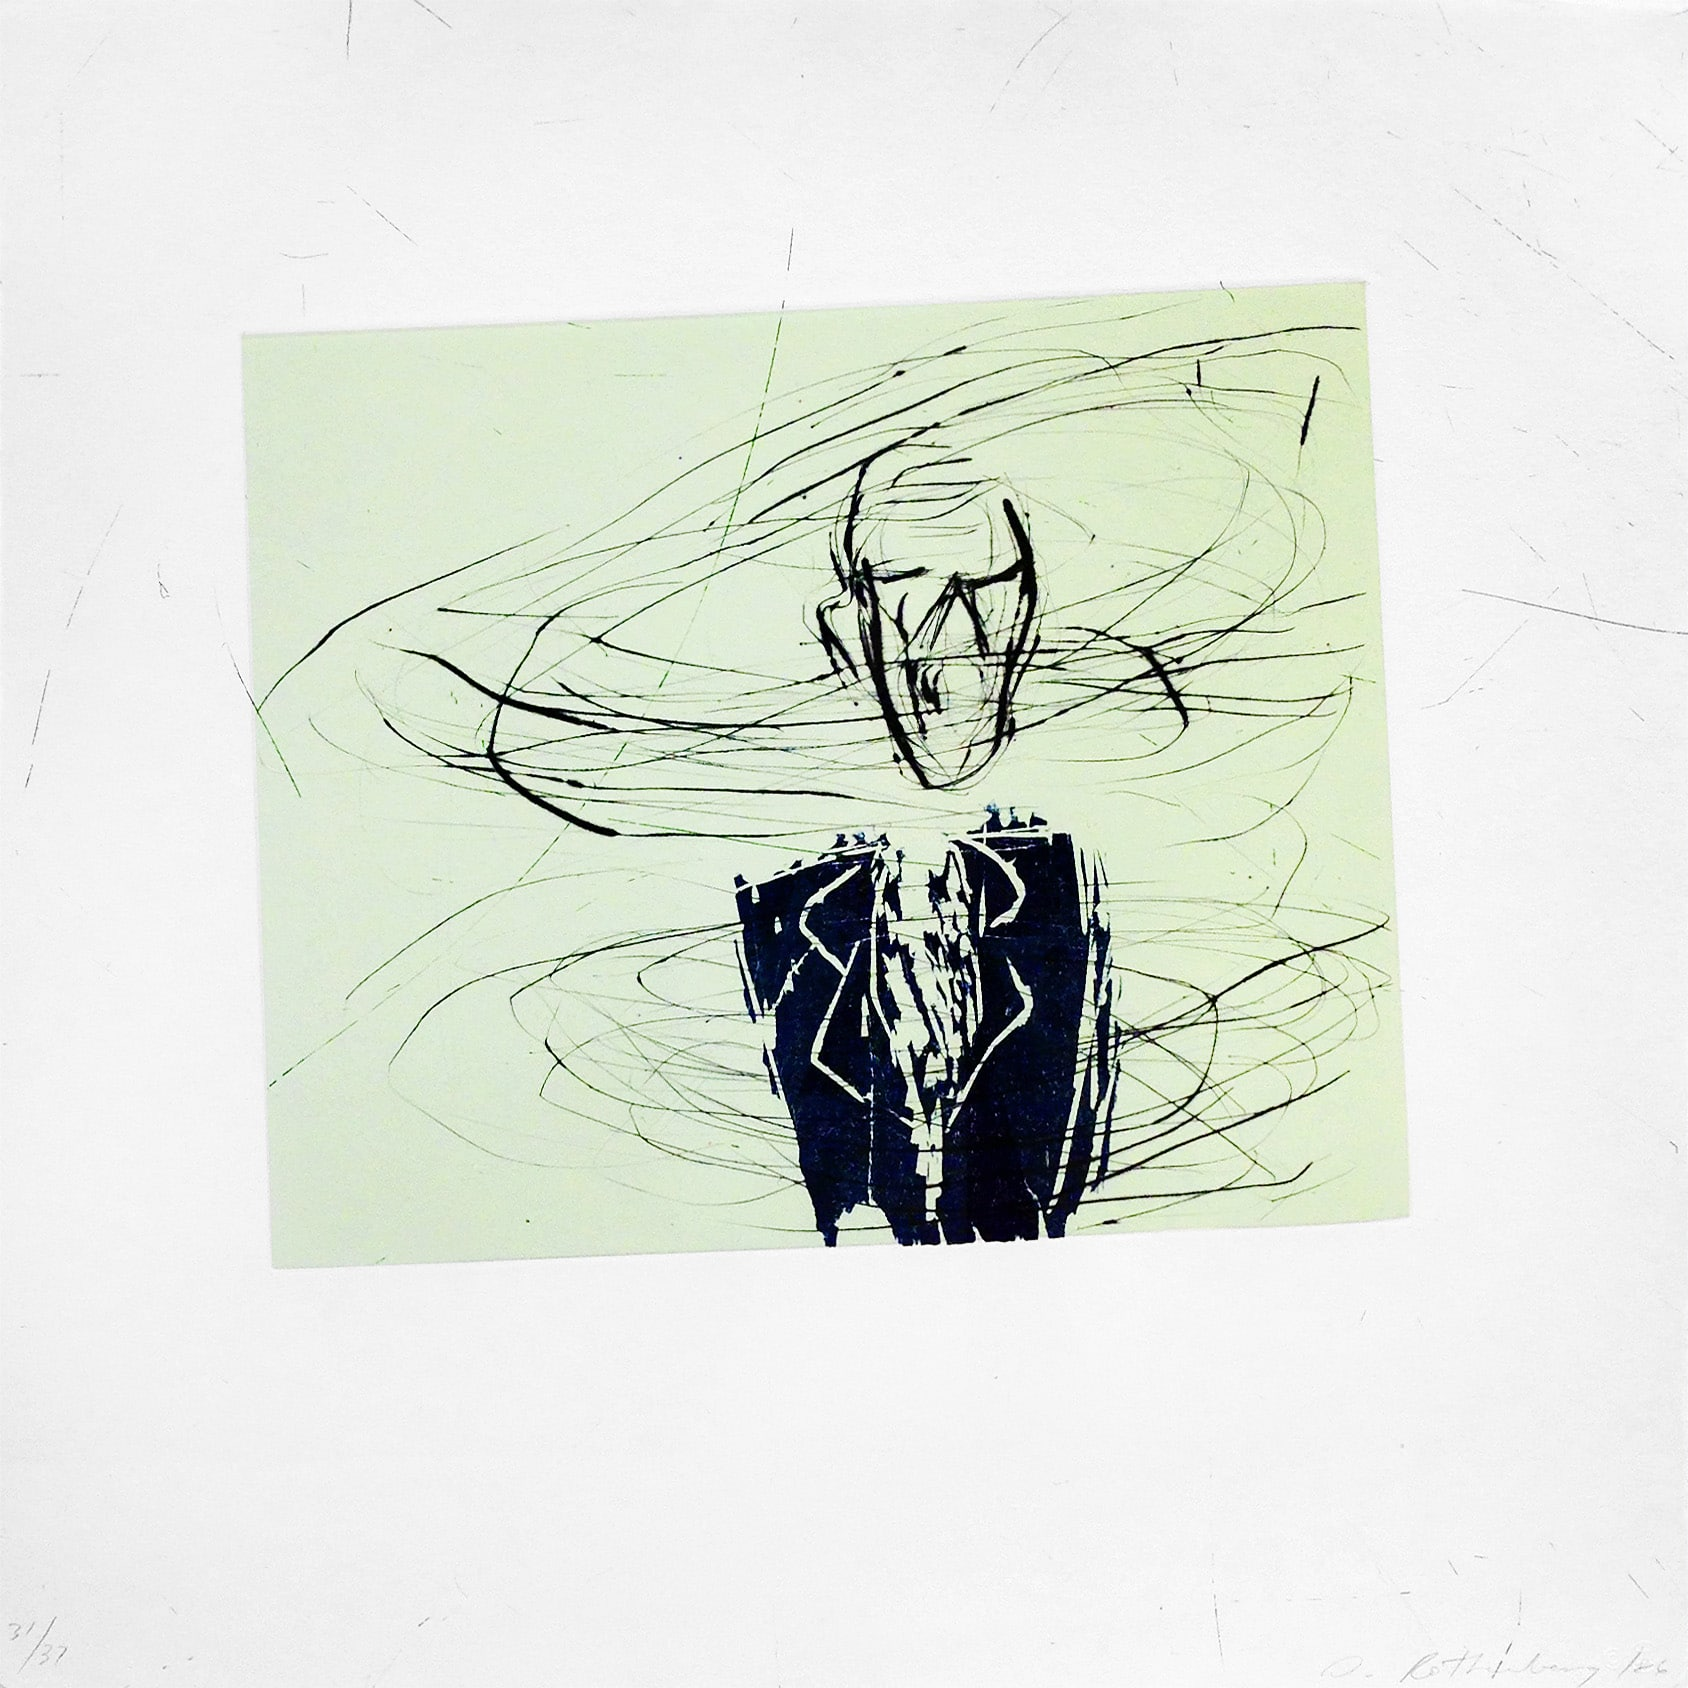 Green Susan Rothenberg Print of Man Breathing